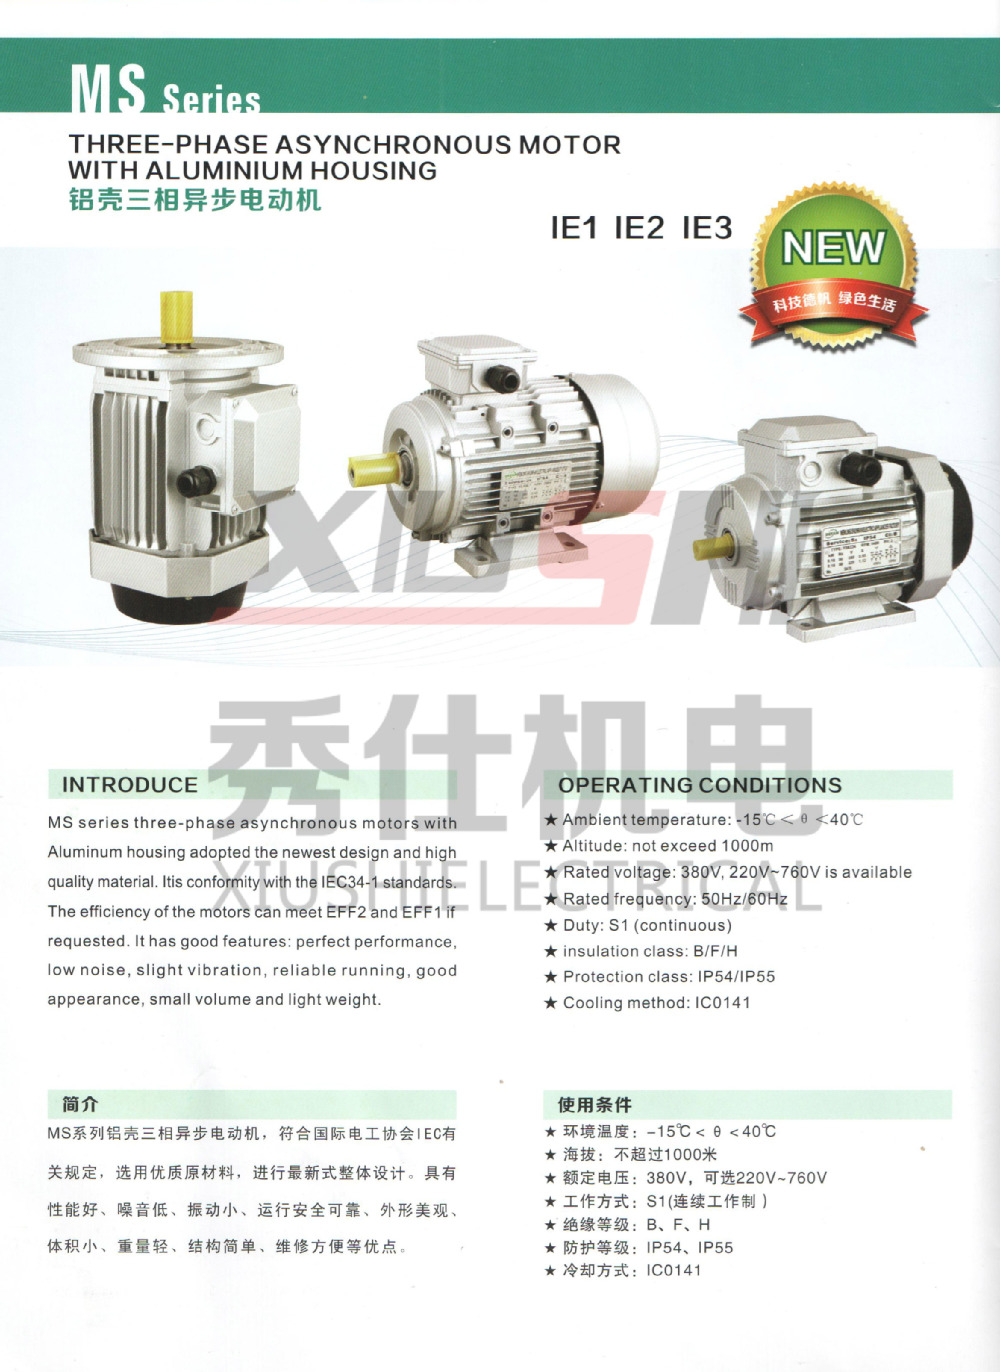 high power MS series asynchronous motor with aluminum housing,ac induction motor,MS-132M-4